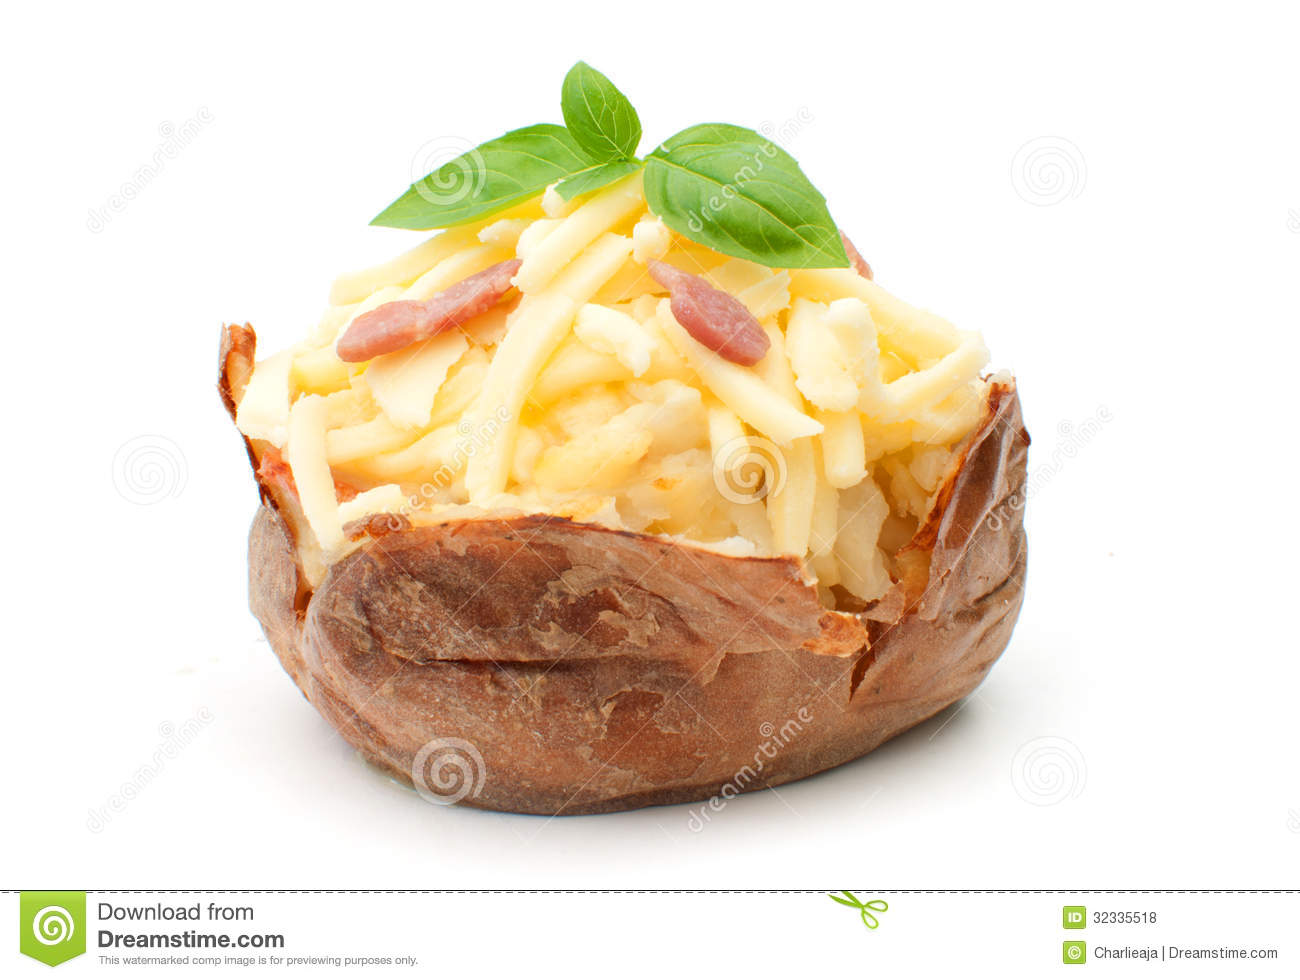 how to cook a jacket potato in the oven